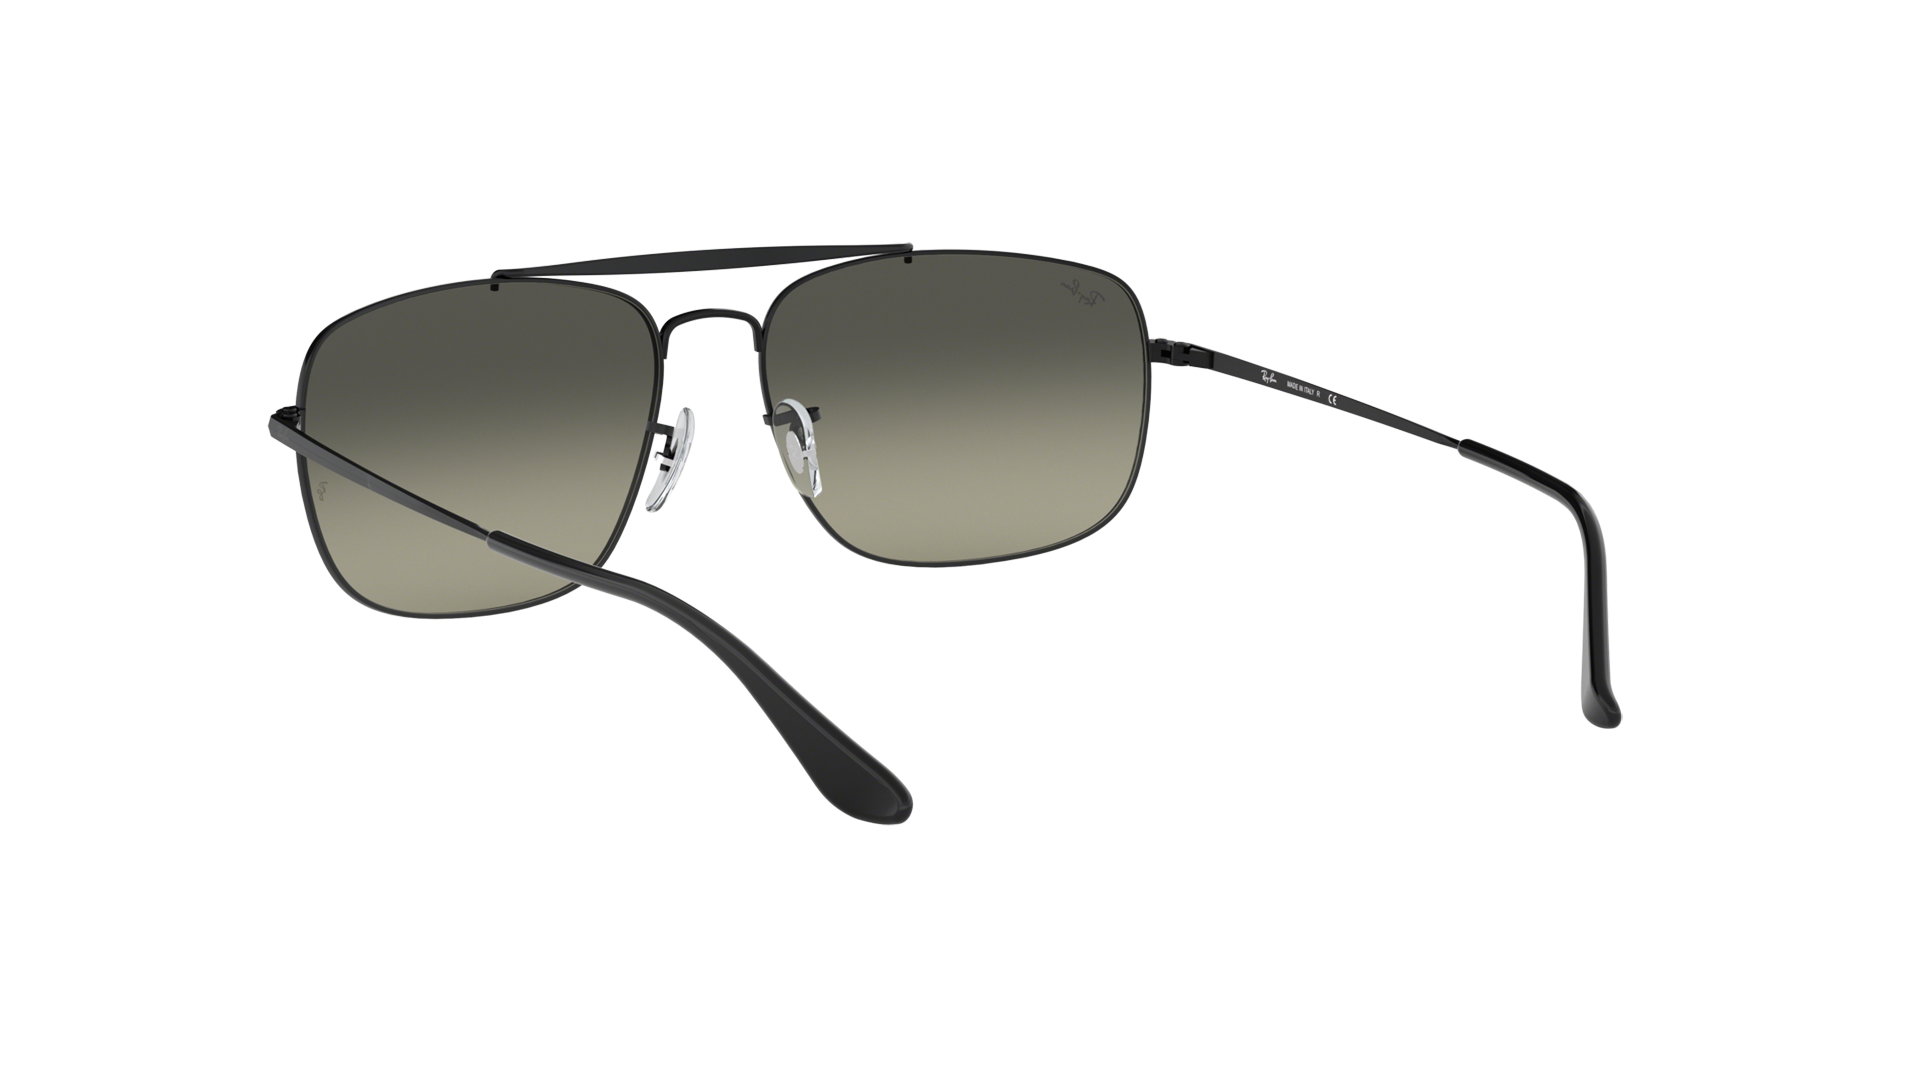 c0eacaf77d9957 Sunglasses Ray-Ban The colonel Black RB3560 002 71 61-17 Large Gradient